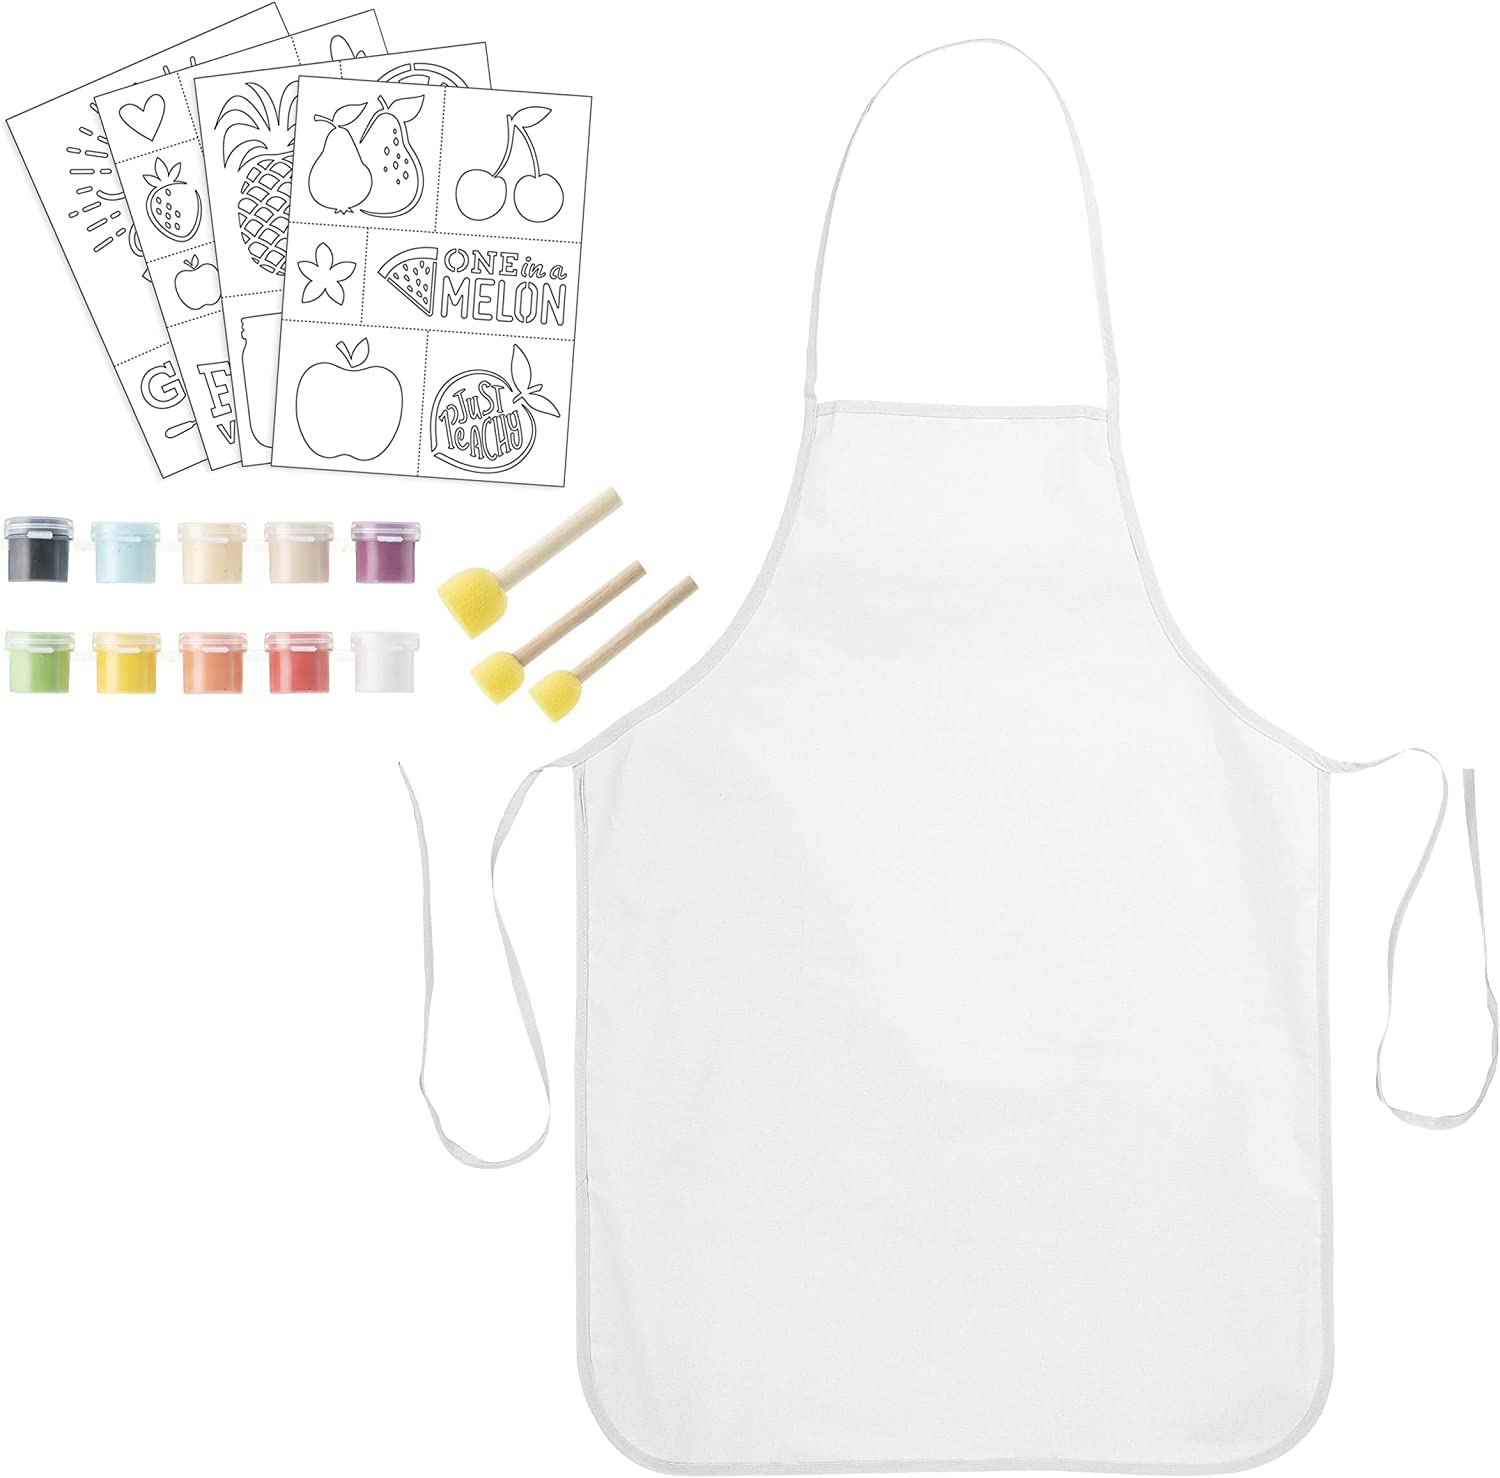 Darice Apron Decorating Kit - 100% White Cotton Aprons with Adhesive Garden-Themed Stencils, Paint and Daubers - Makes a Great Gift - 38-Piece Set